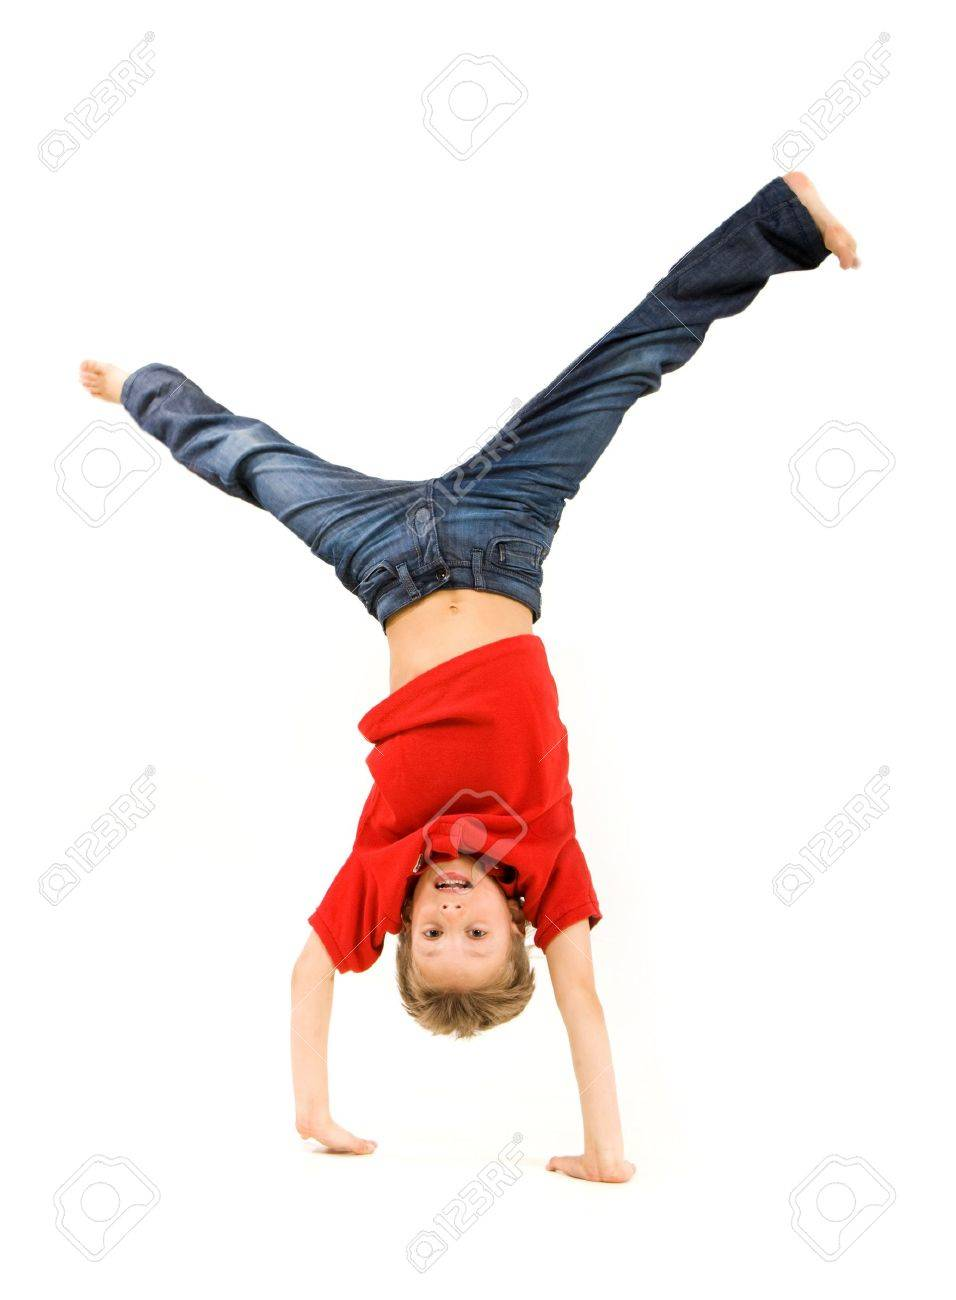 Playful lad standing on his arms with legs pointing upwards over white background Stock Photo - 4623370